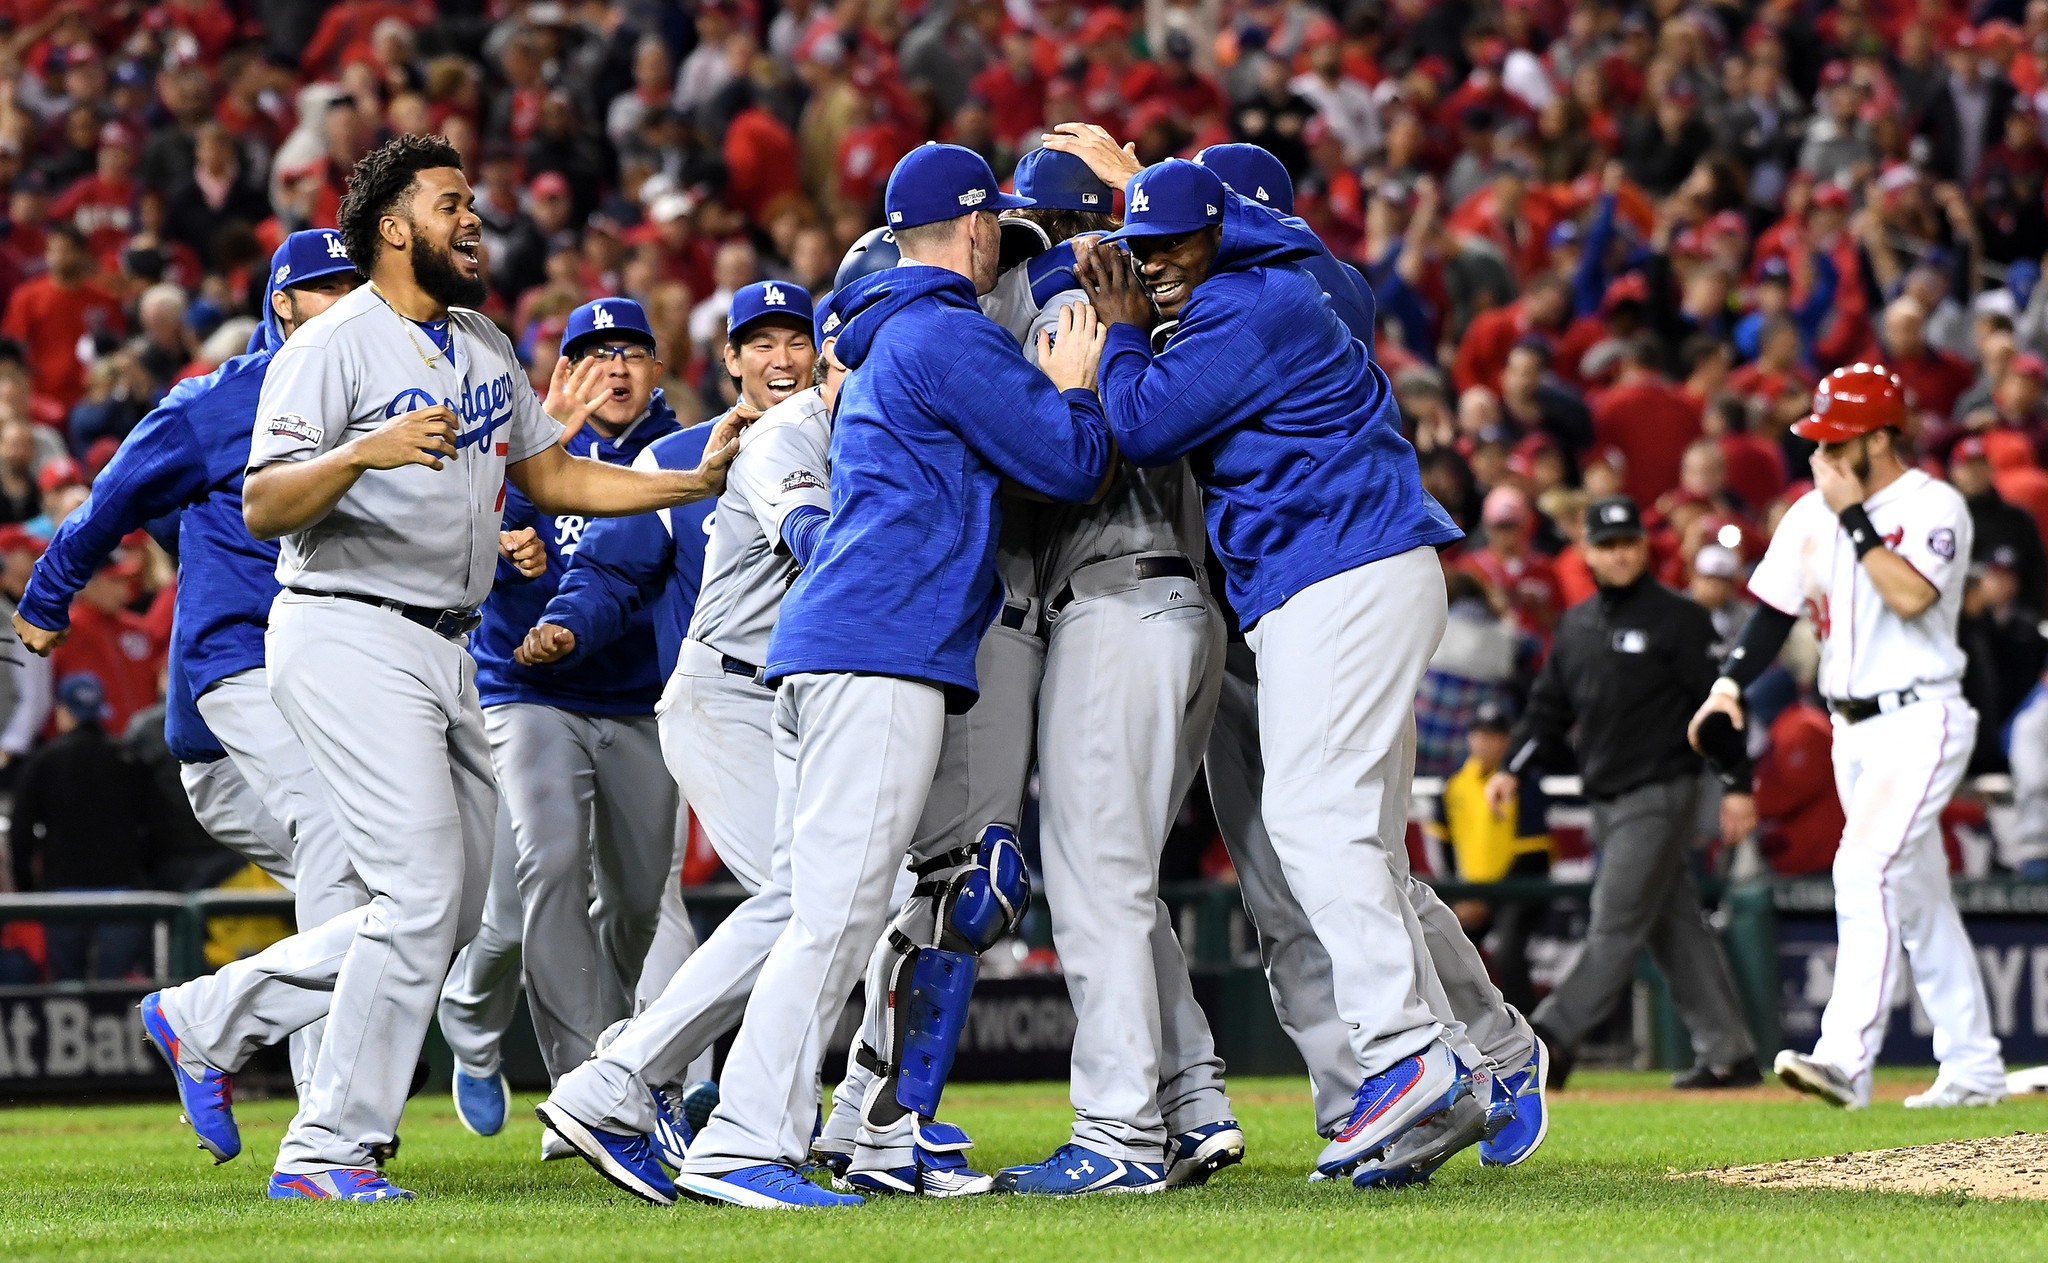 Clayton Kershaw celebrates with teamates at the end of the game in Game 5 of the NLDS in Washington D.C. in October 2016.